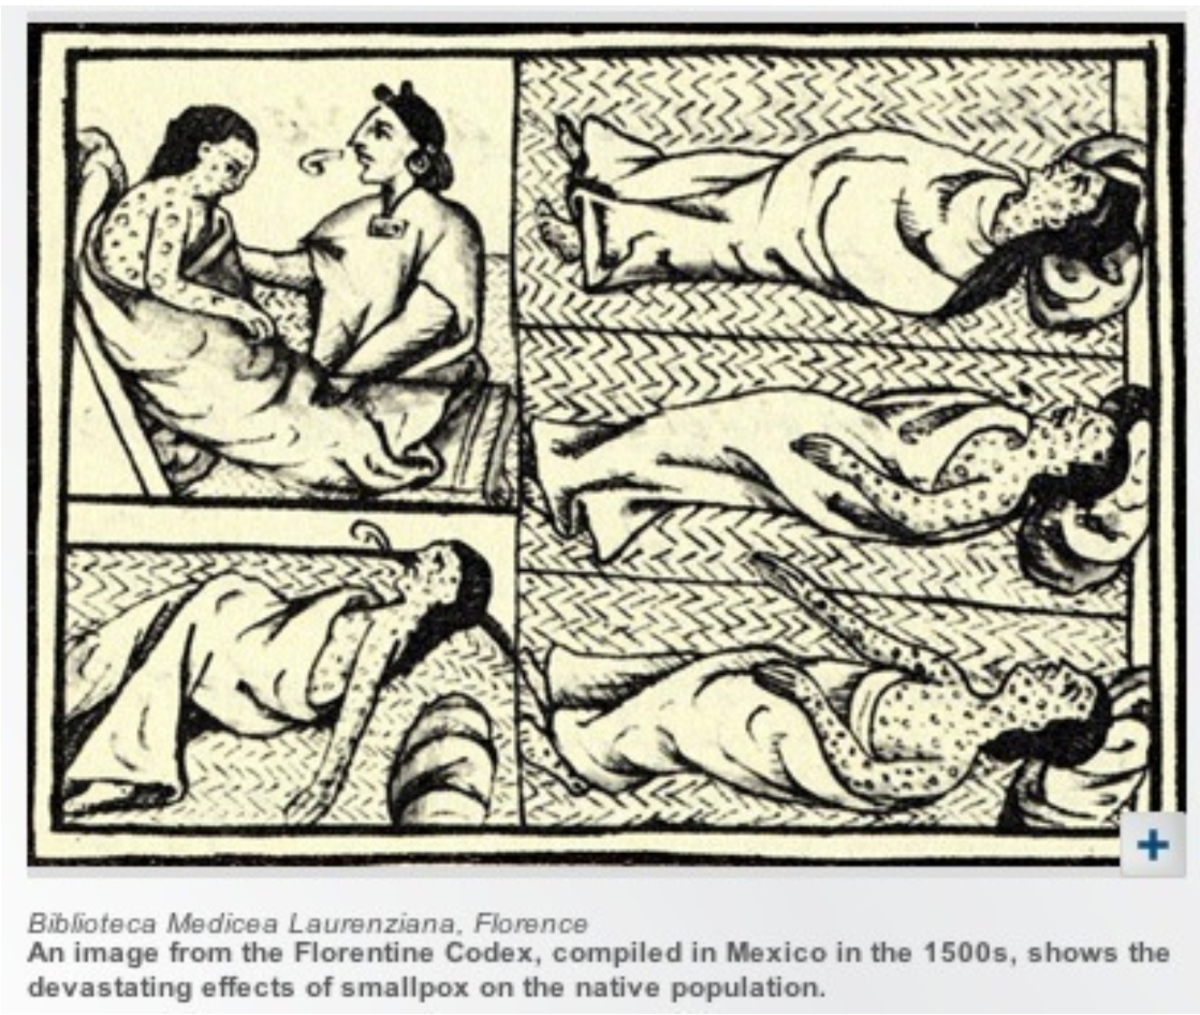 Source 8: An image from the Florentine Codex complied in 1500s